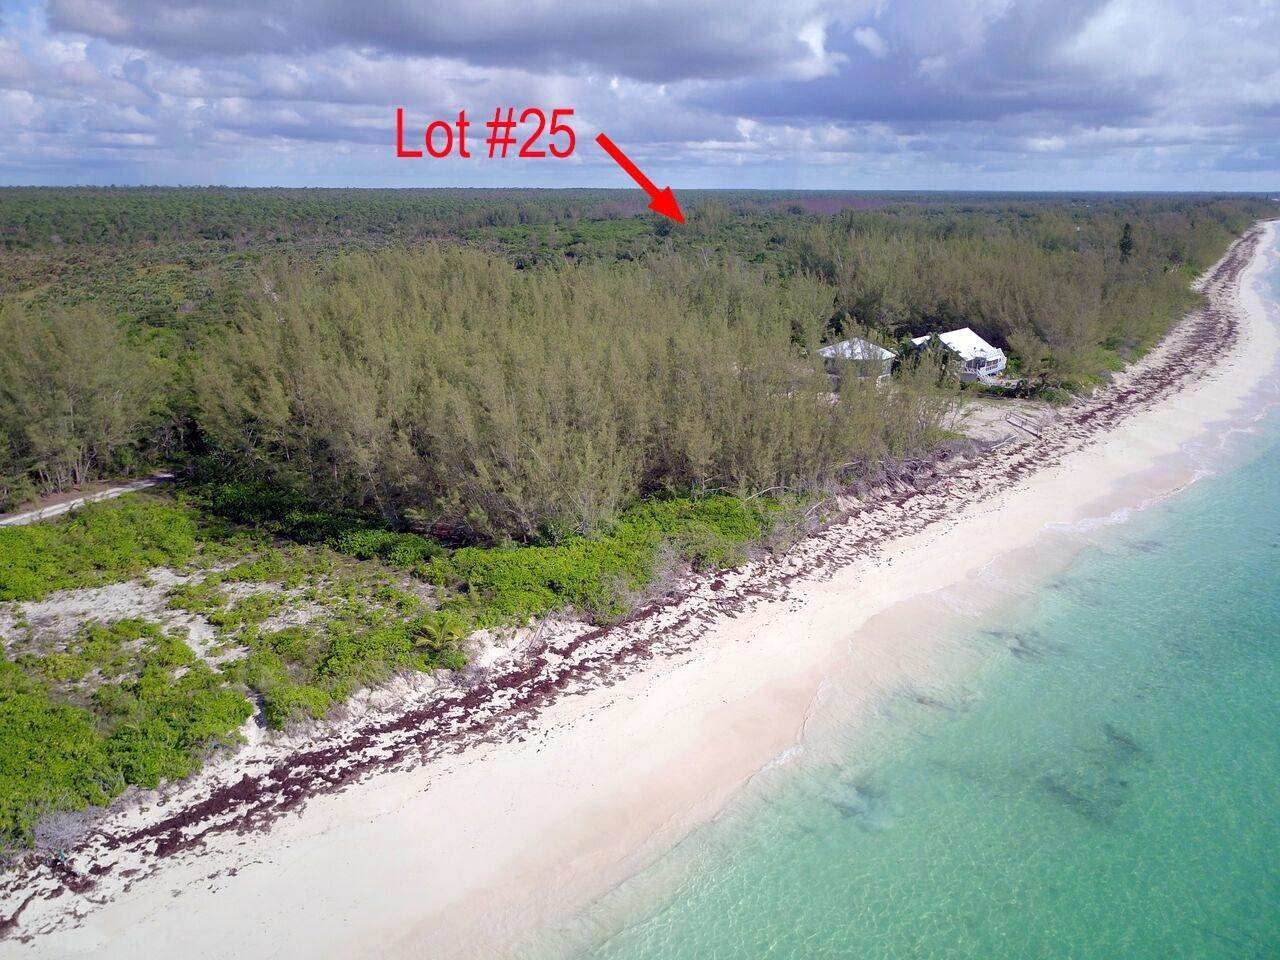 Terreno por un Venta en Bahama Palm Shores Lot 25 Blk 9 - MLS 42293 Bahama Palm Shores, Abaco, Bahamas